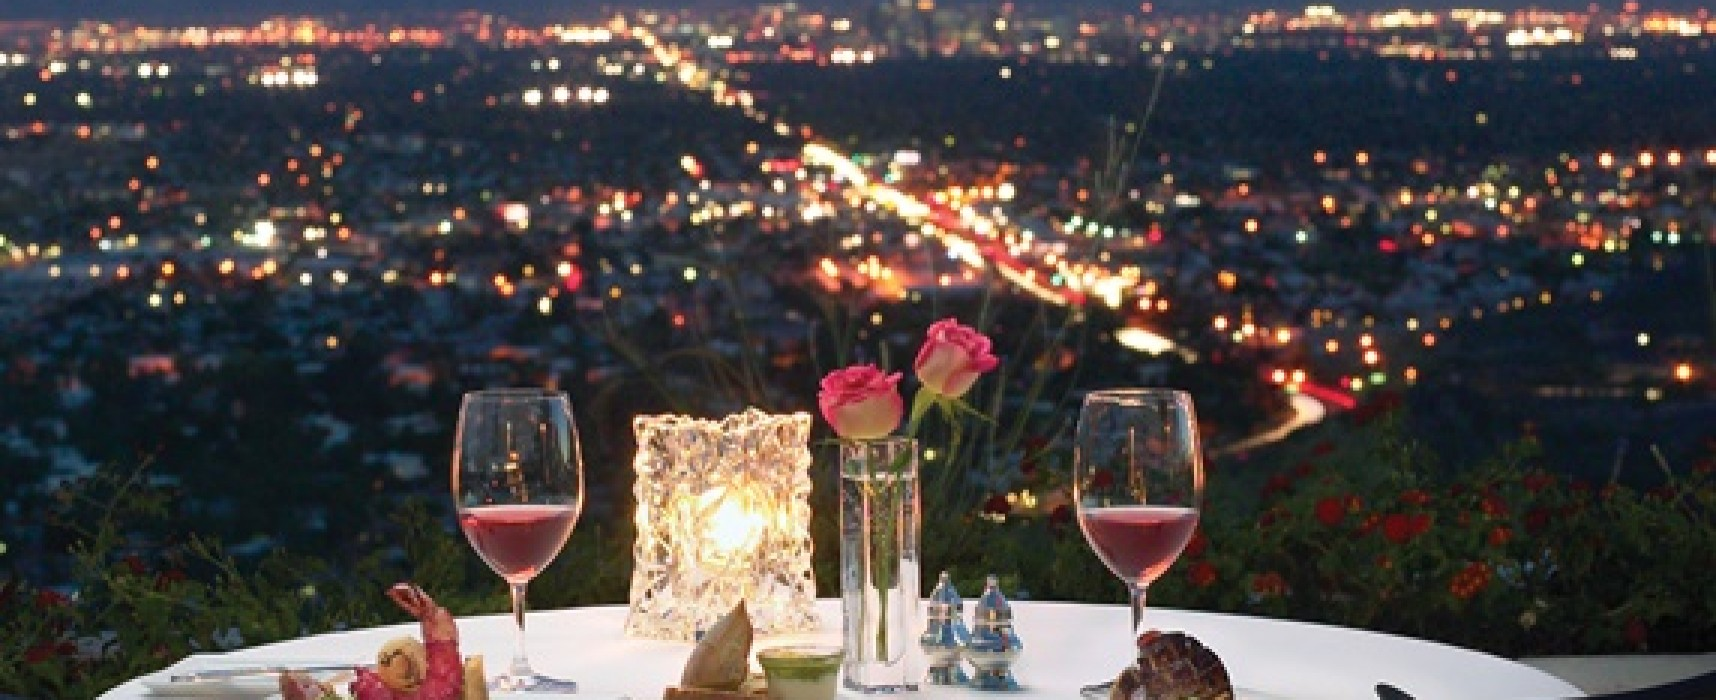 15 Places to Eat out in Delhi On Valentine's Day